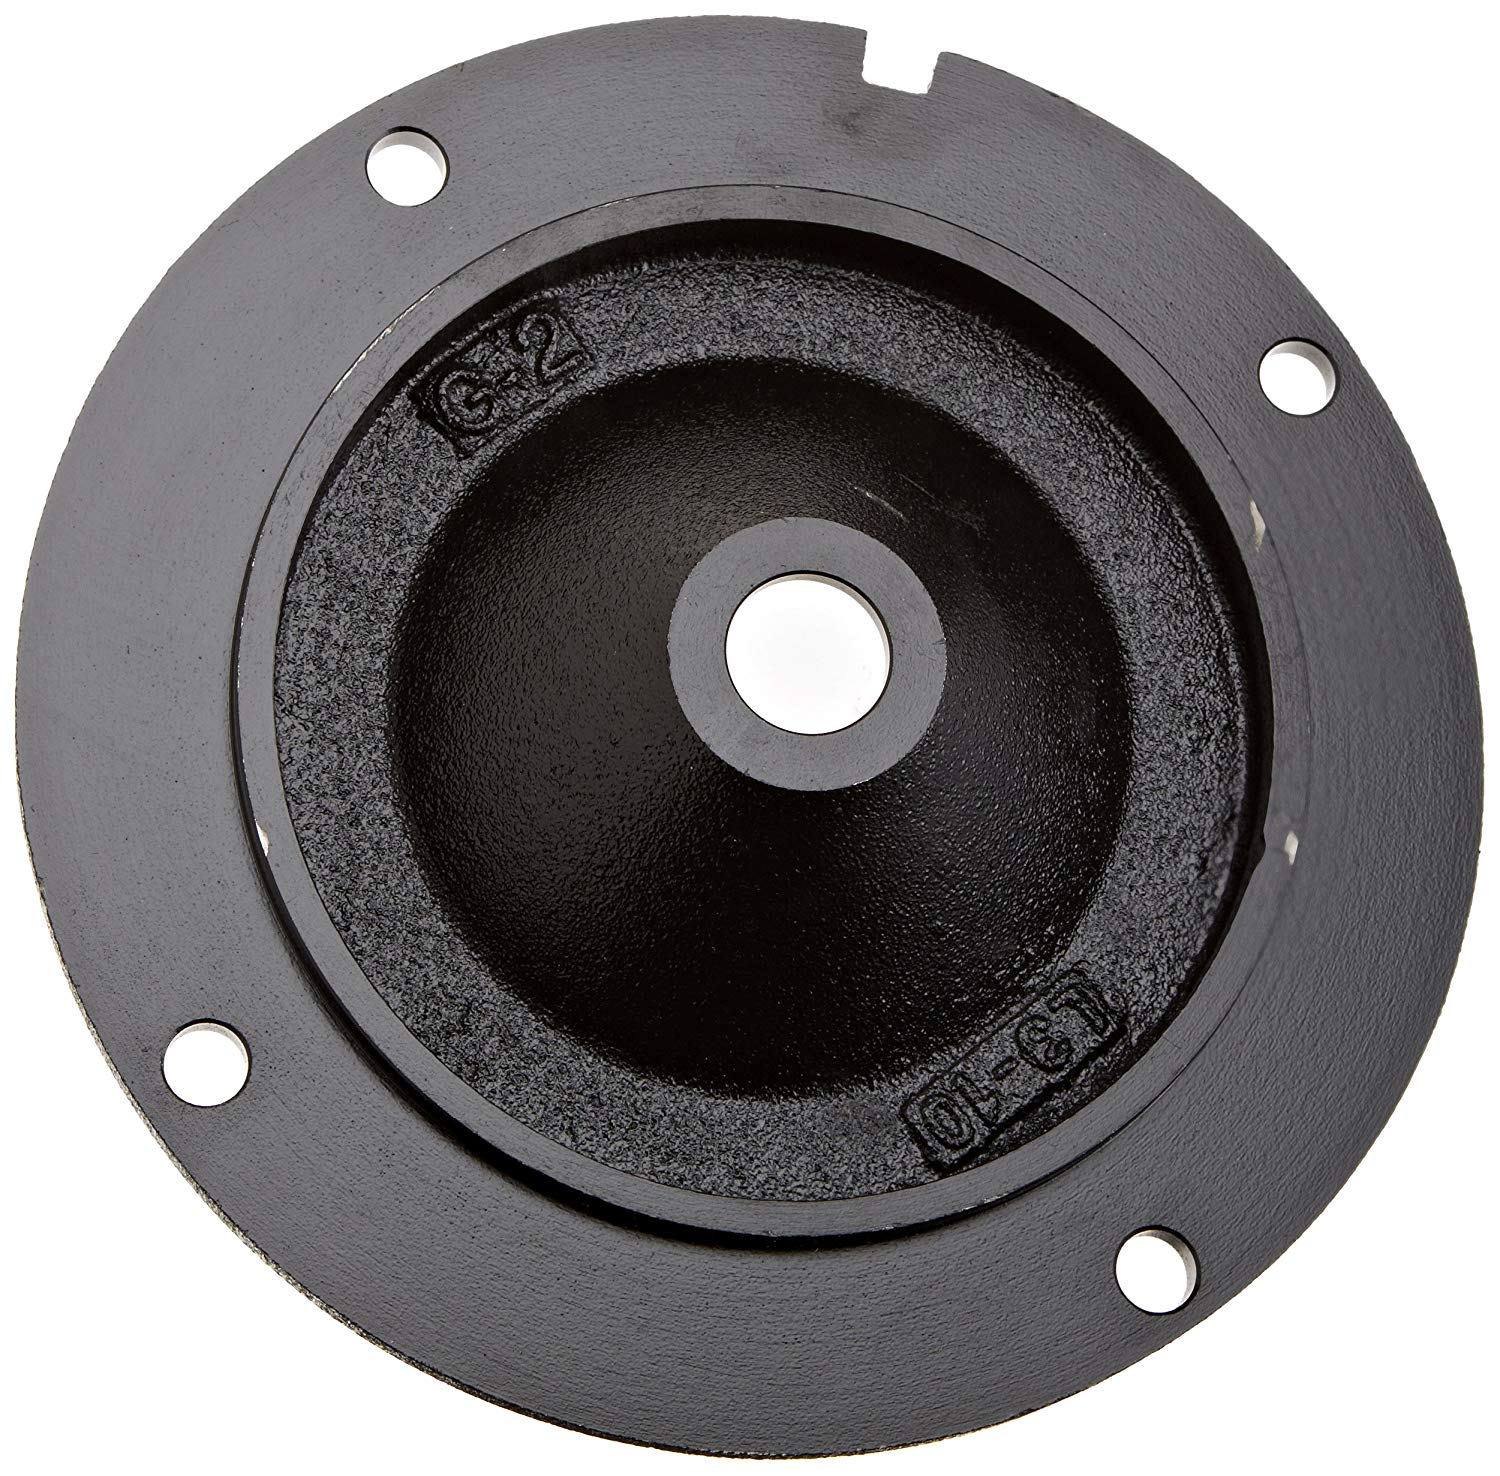 hight resolution of get quotations pentair l3 10 seal plate assembly replacement pool and spa pump